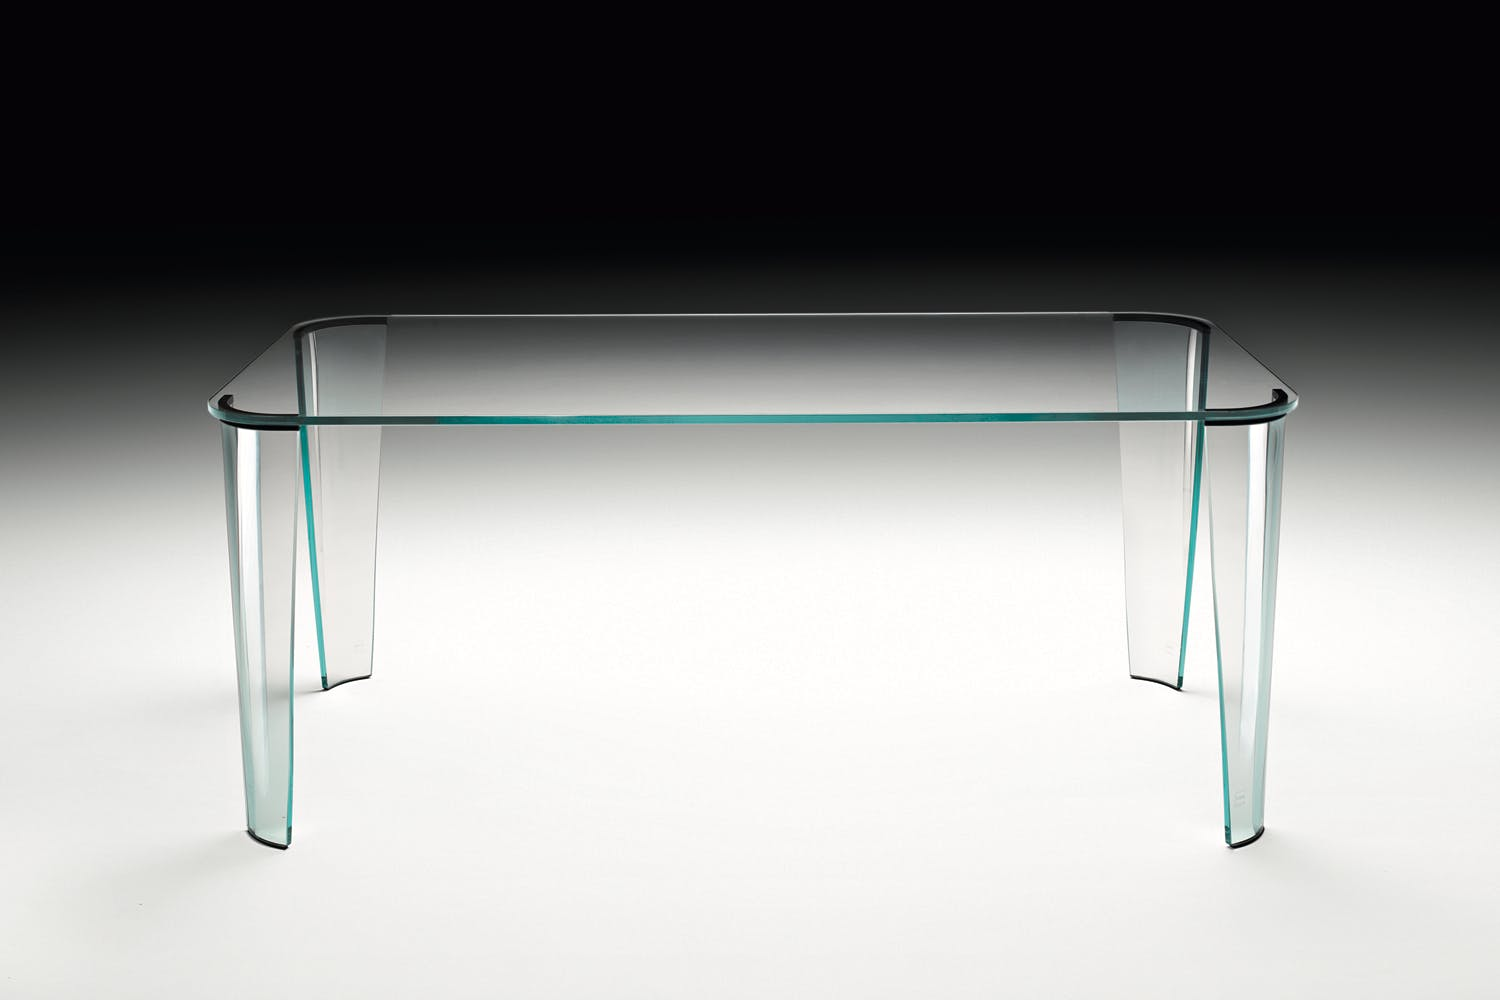 Montefeltro table by enzo mari for fiam italia space for Glass tavoli cristallo